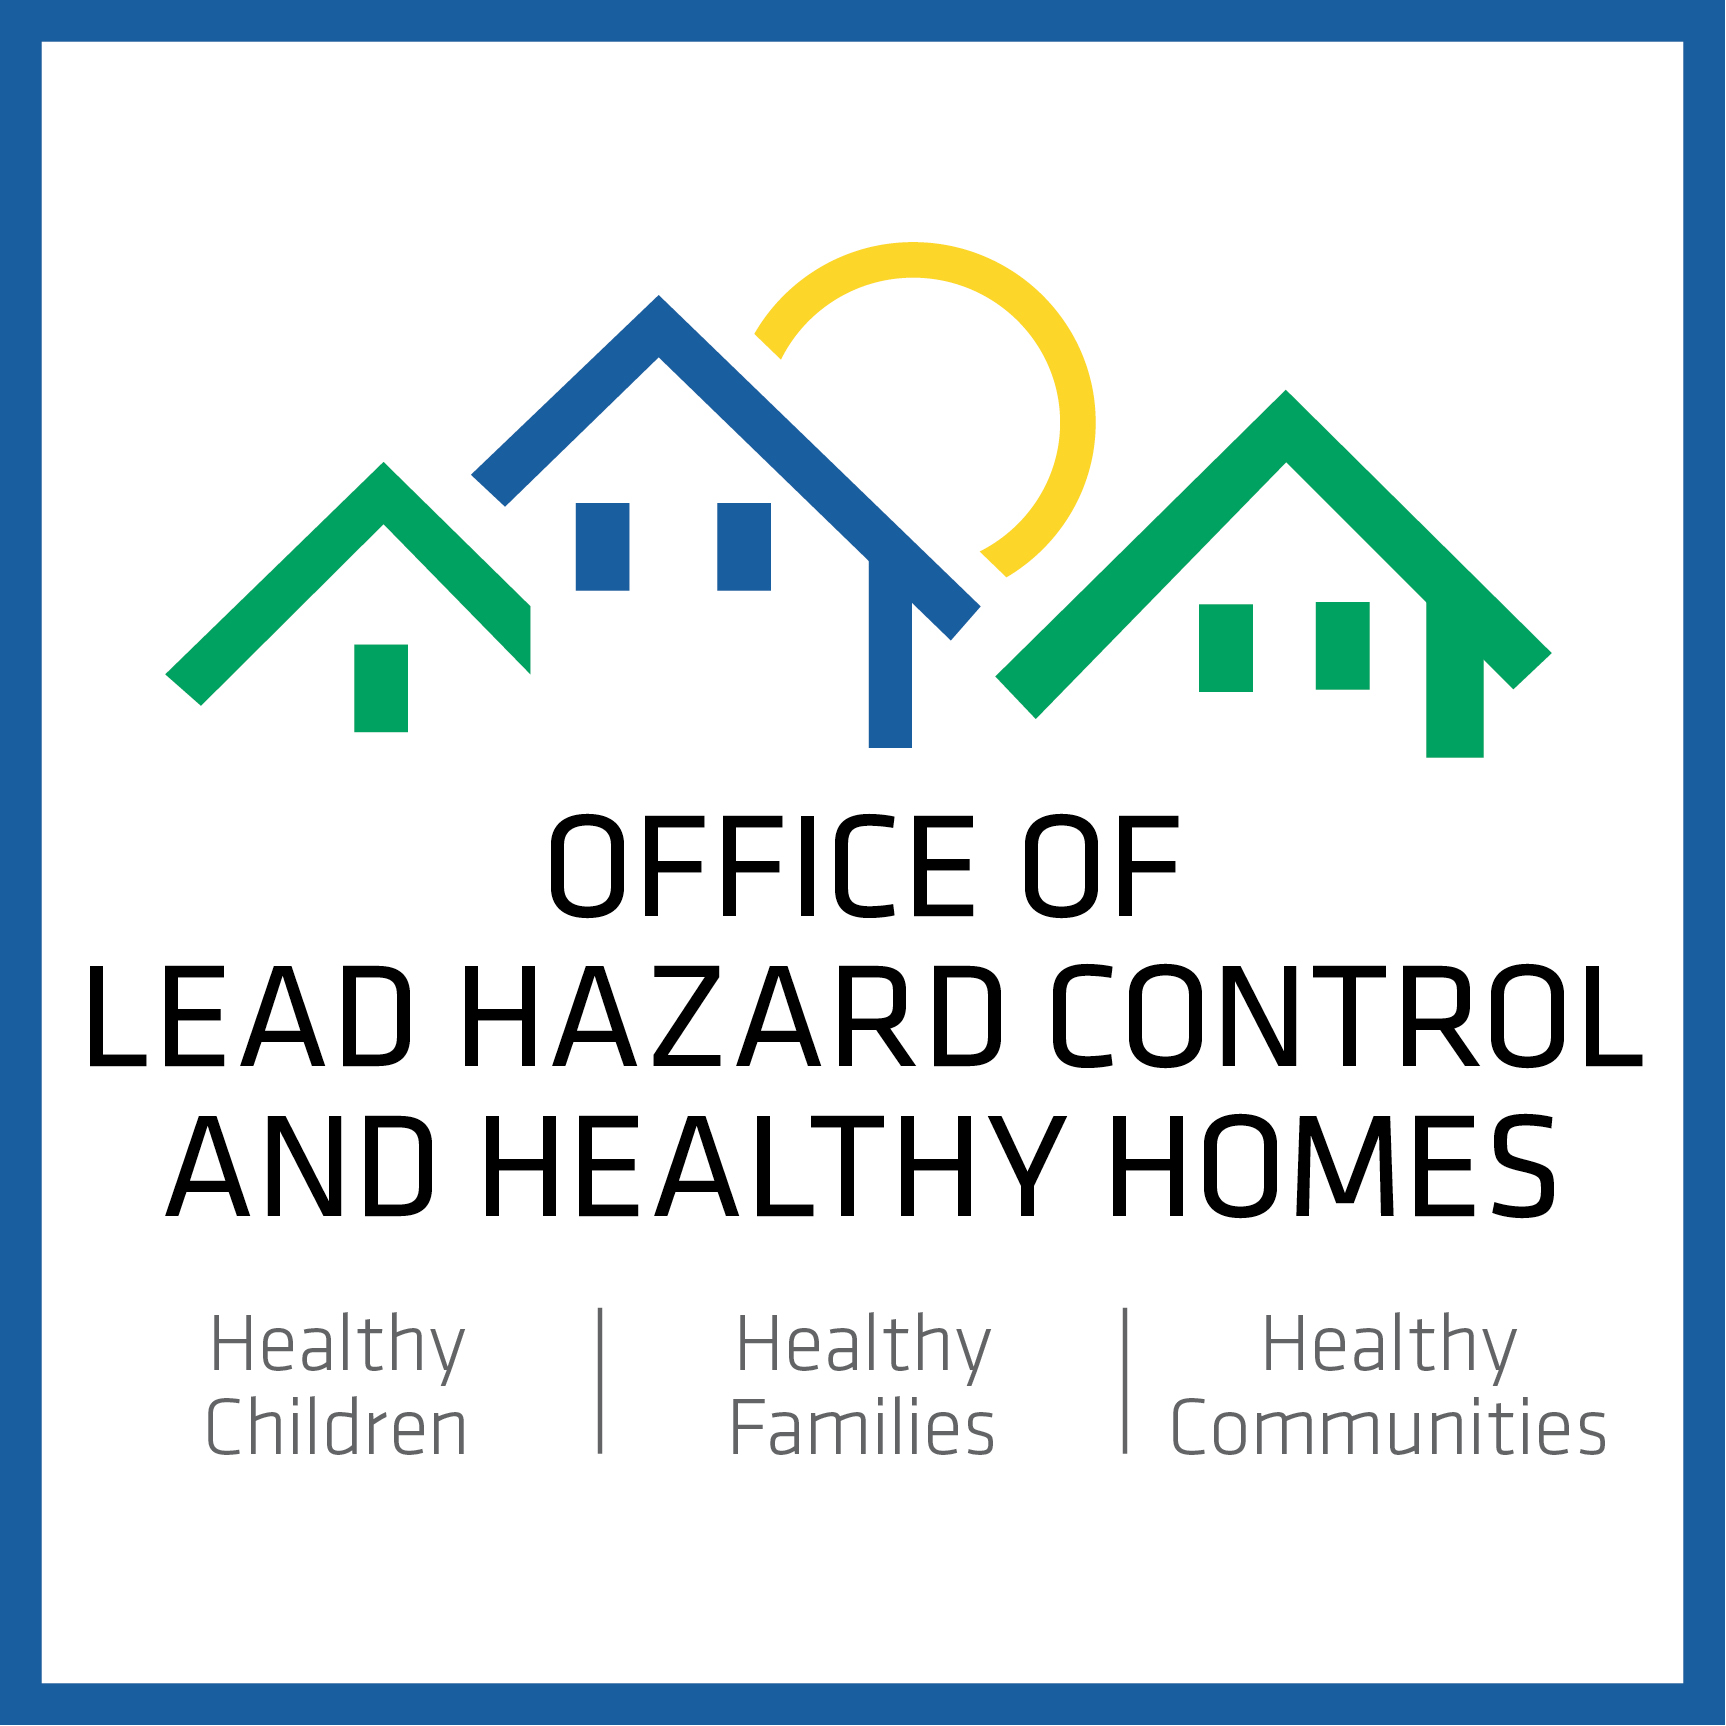 Office of Lead Hazard Control and Healthy Homes logo